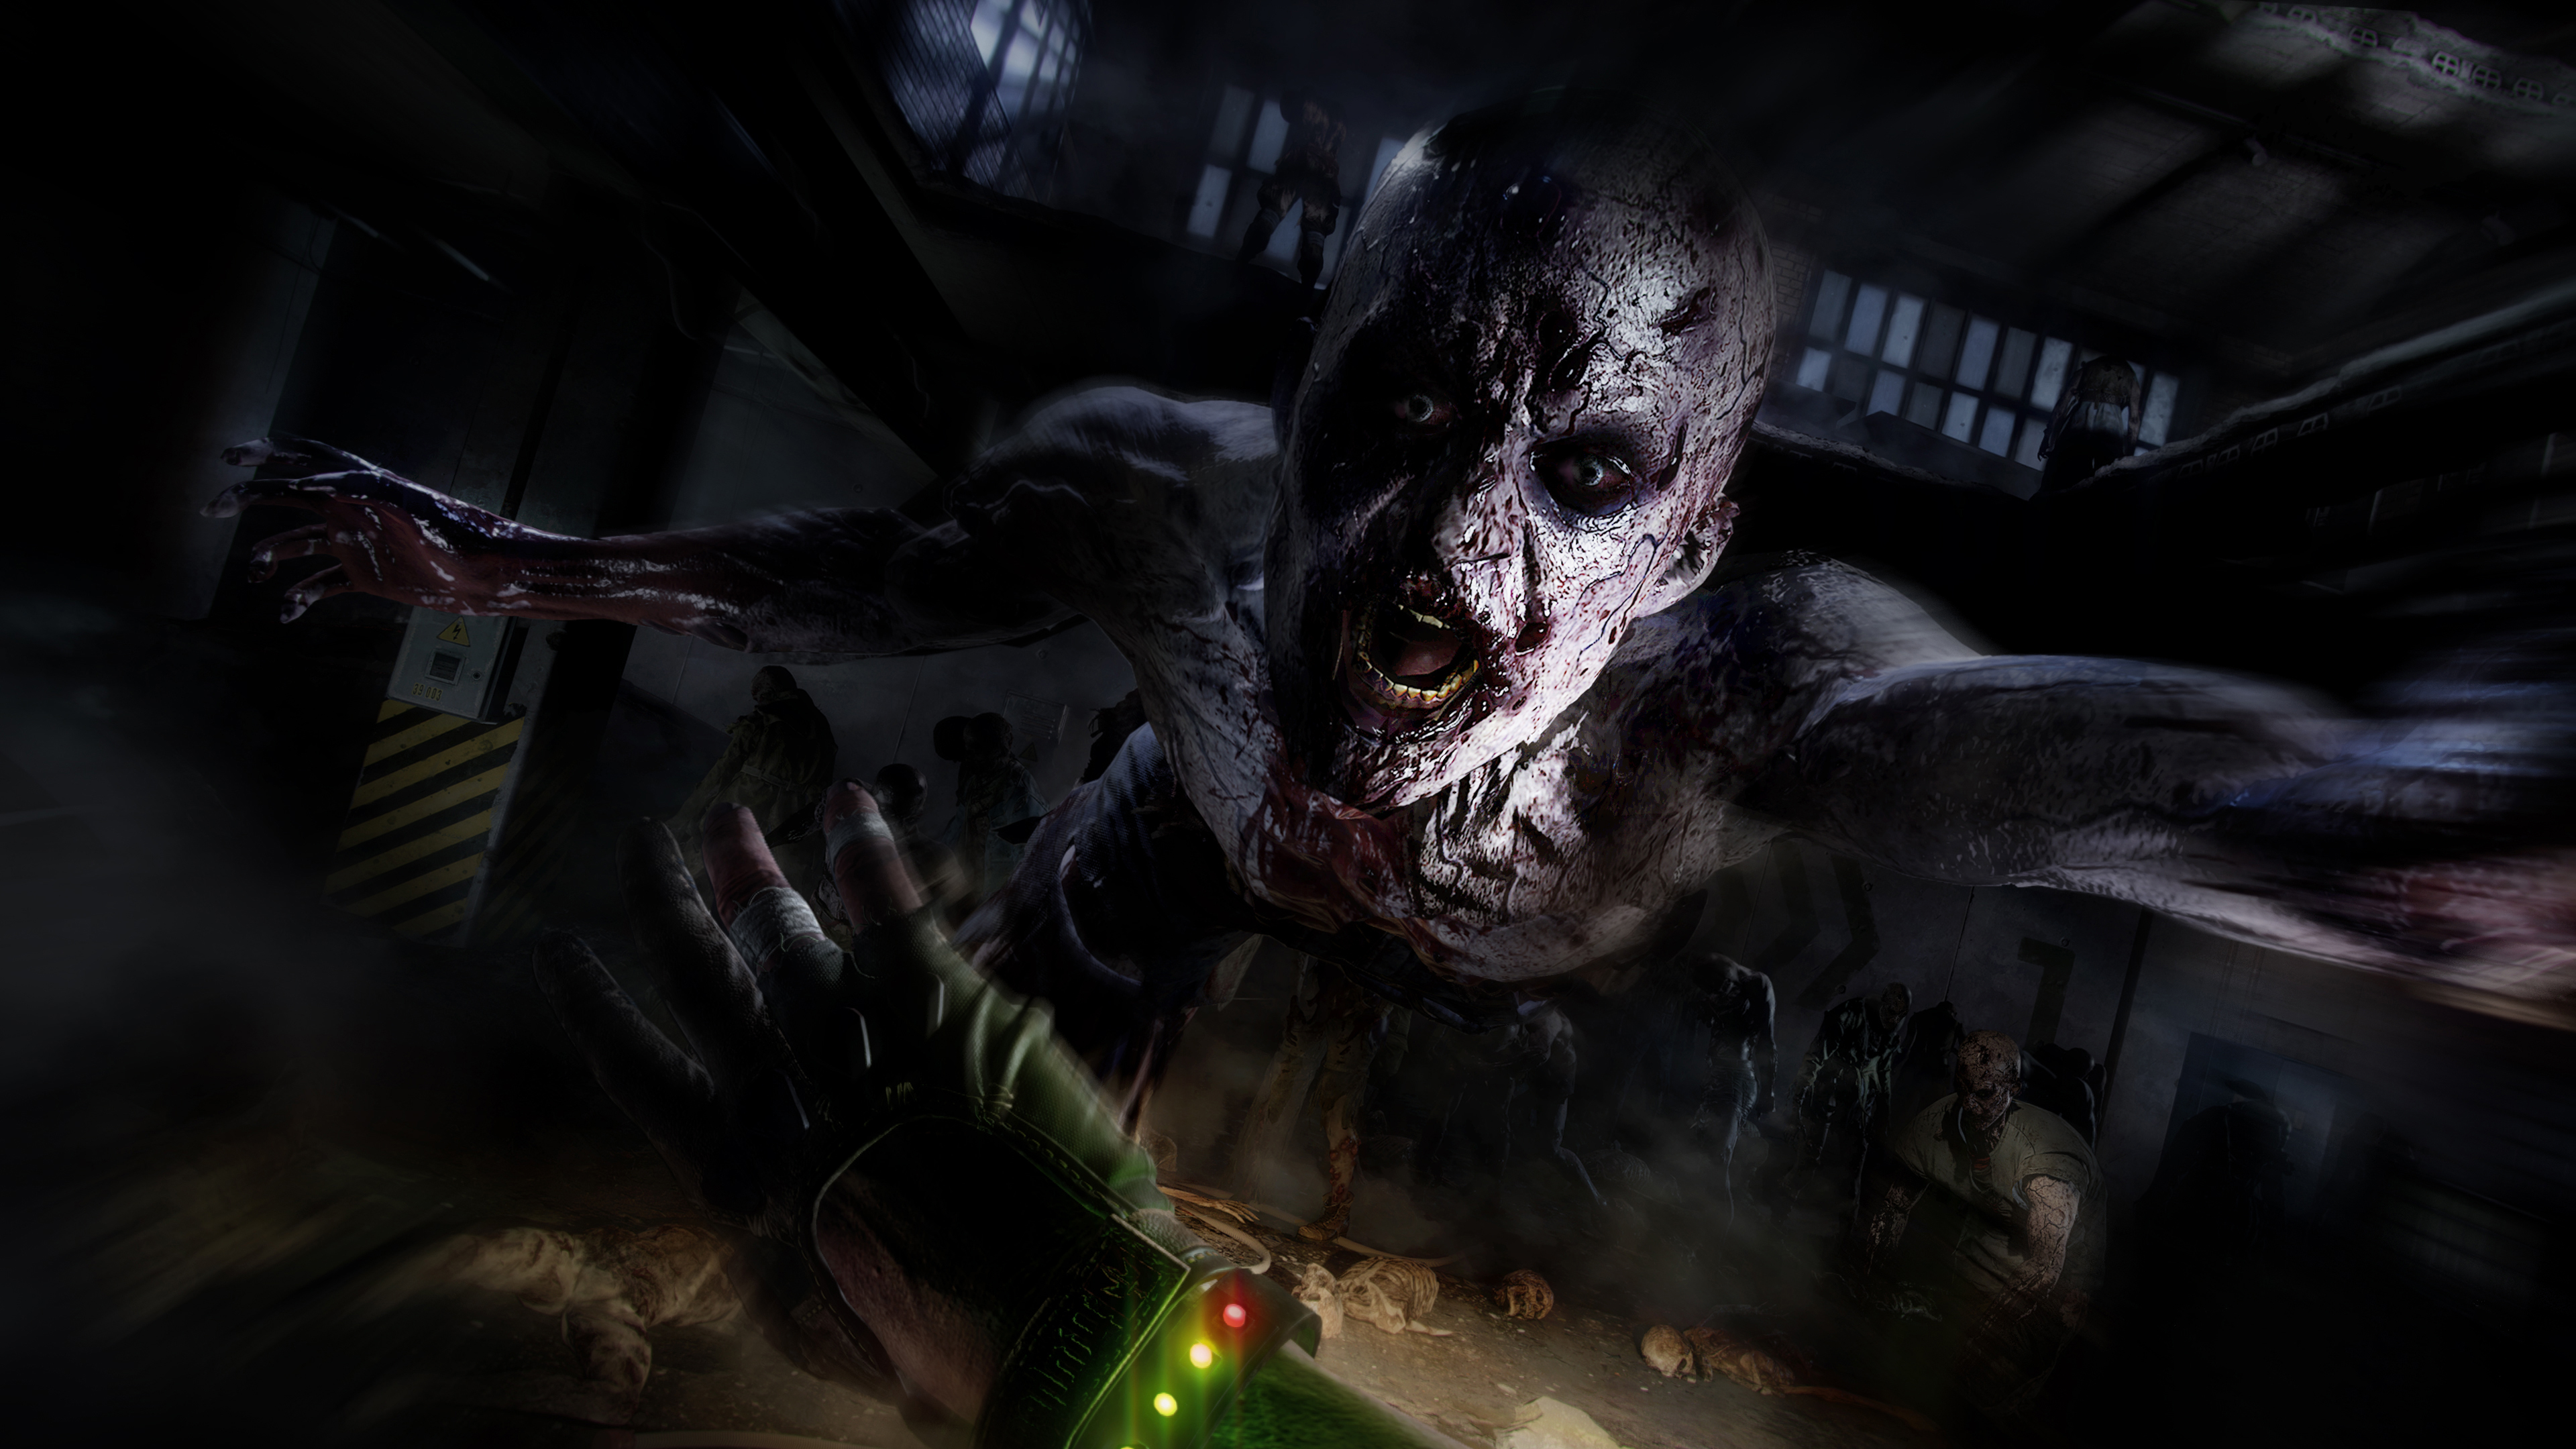 Dying Light 2 Game Wallpaper Hd Games 4k Wallpapers Images